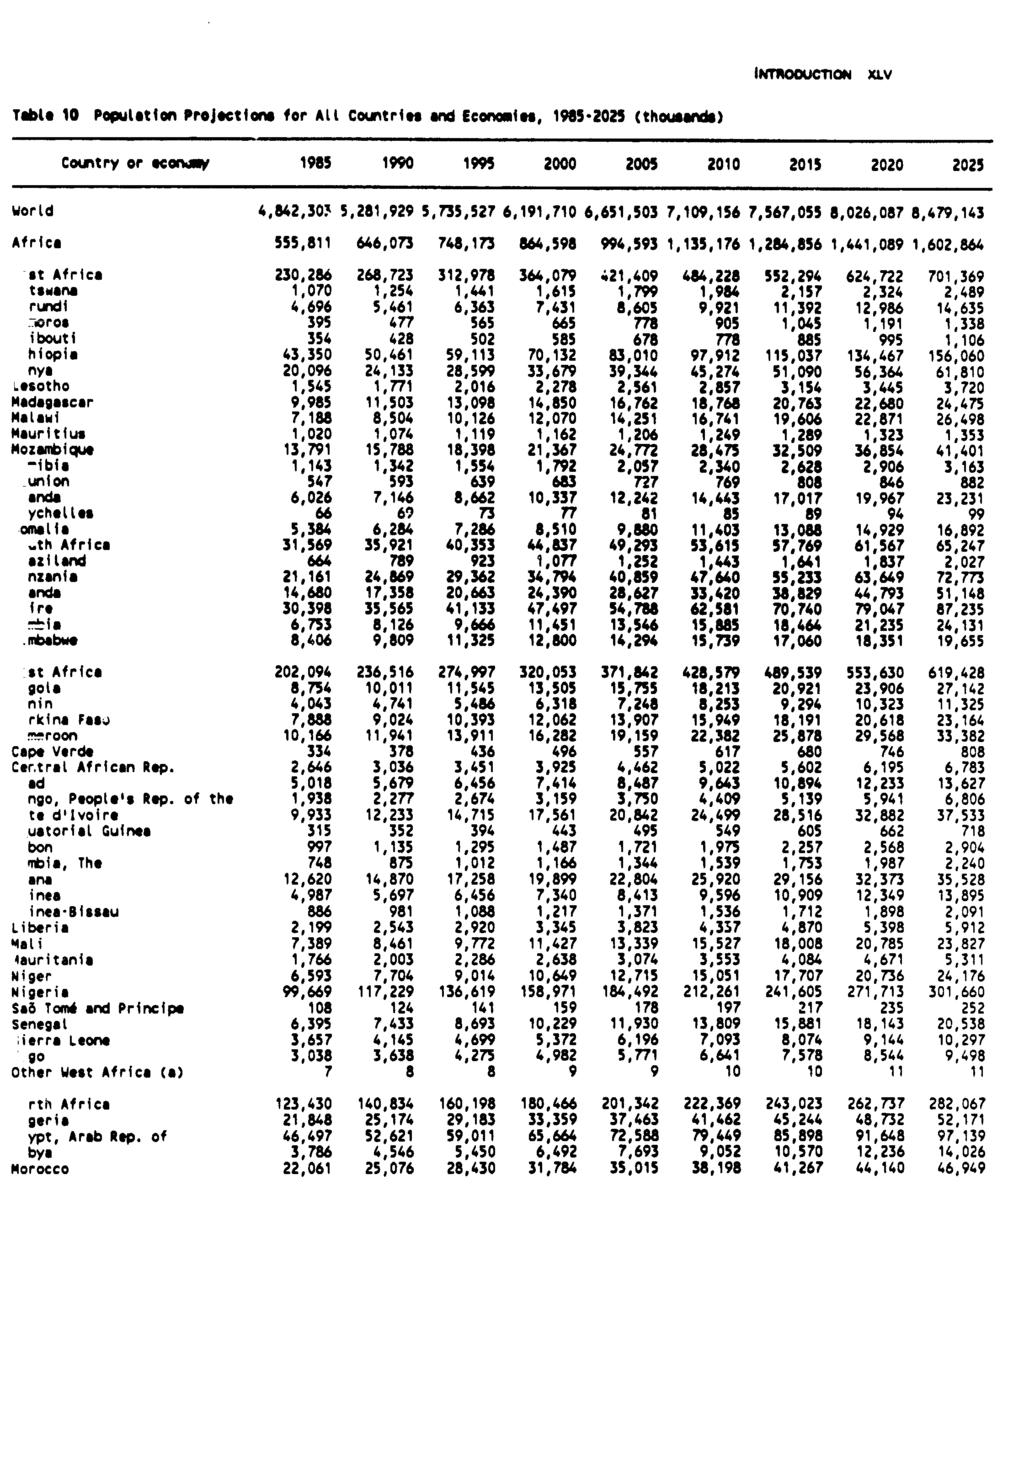 IThOOU'riiON XLV TabLO 10 Pwpulation Projections for ALl Countrie ard Econmies, 1985-2025 (thou ser) Country or econw 1985 1990 1995 2000 2005 2010 2015 2020 2025 WorLd 4,842,30> 5,281,929 5,735,527